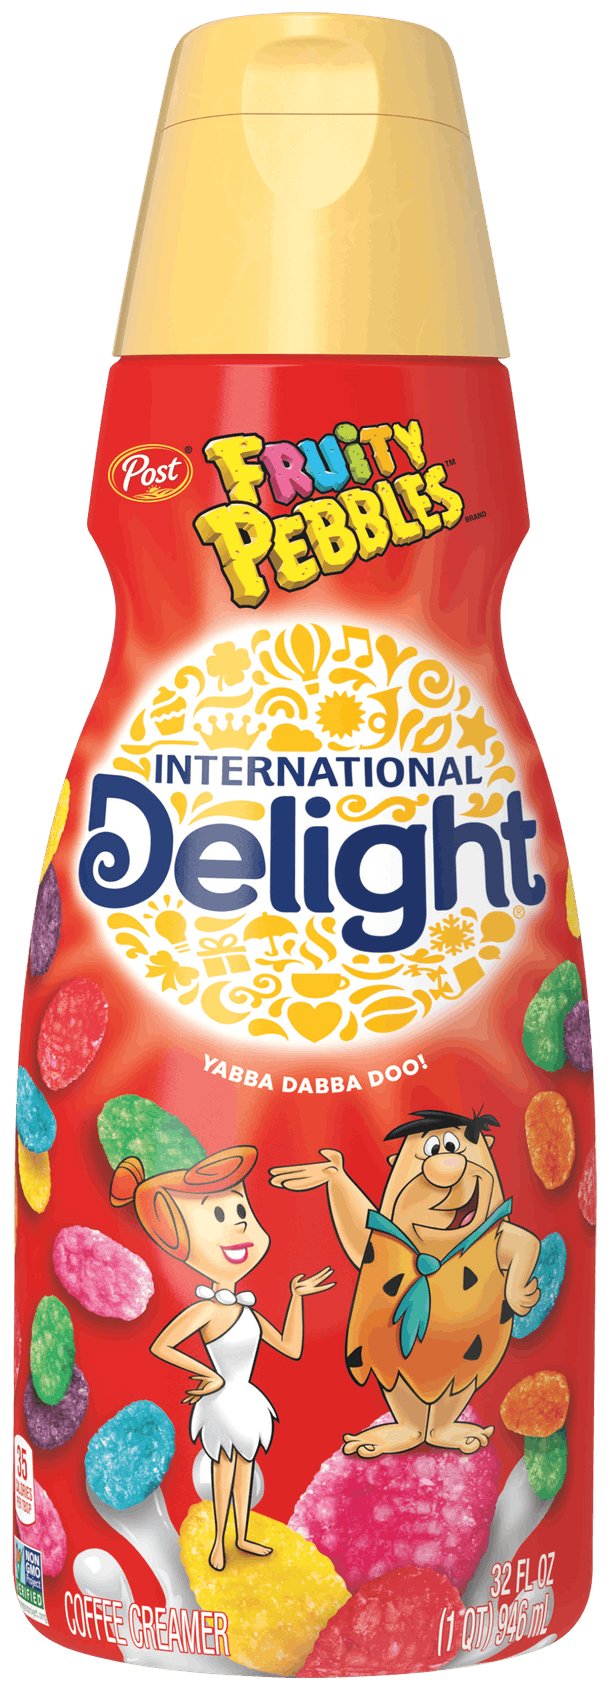 International Delight's new Fruity Pebbles & Cocoa Pebbles Coffee Creamers are available in January 2021 at Walmart